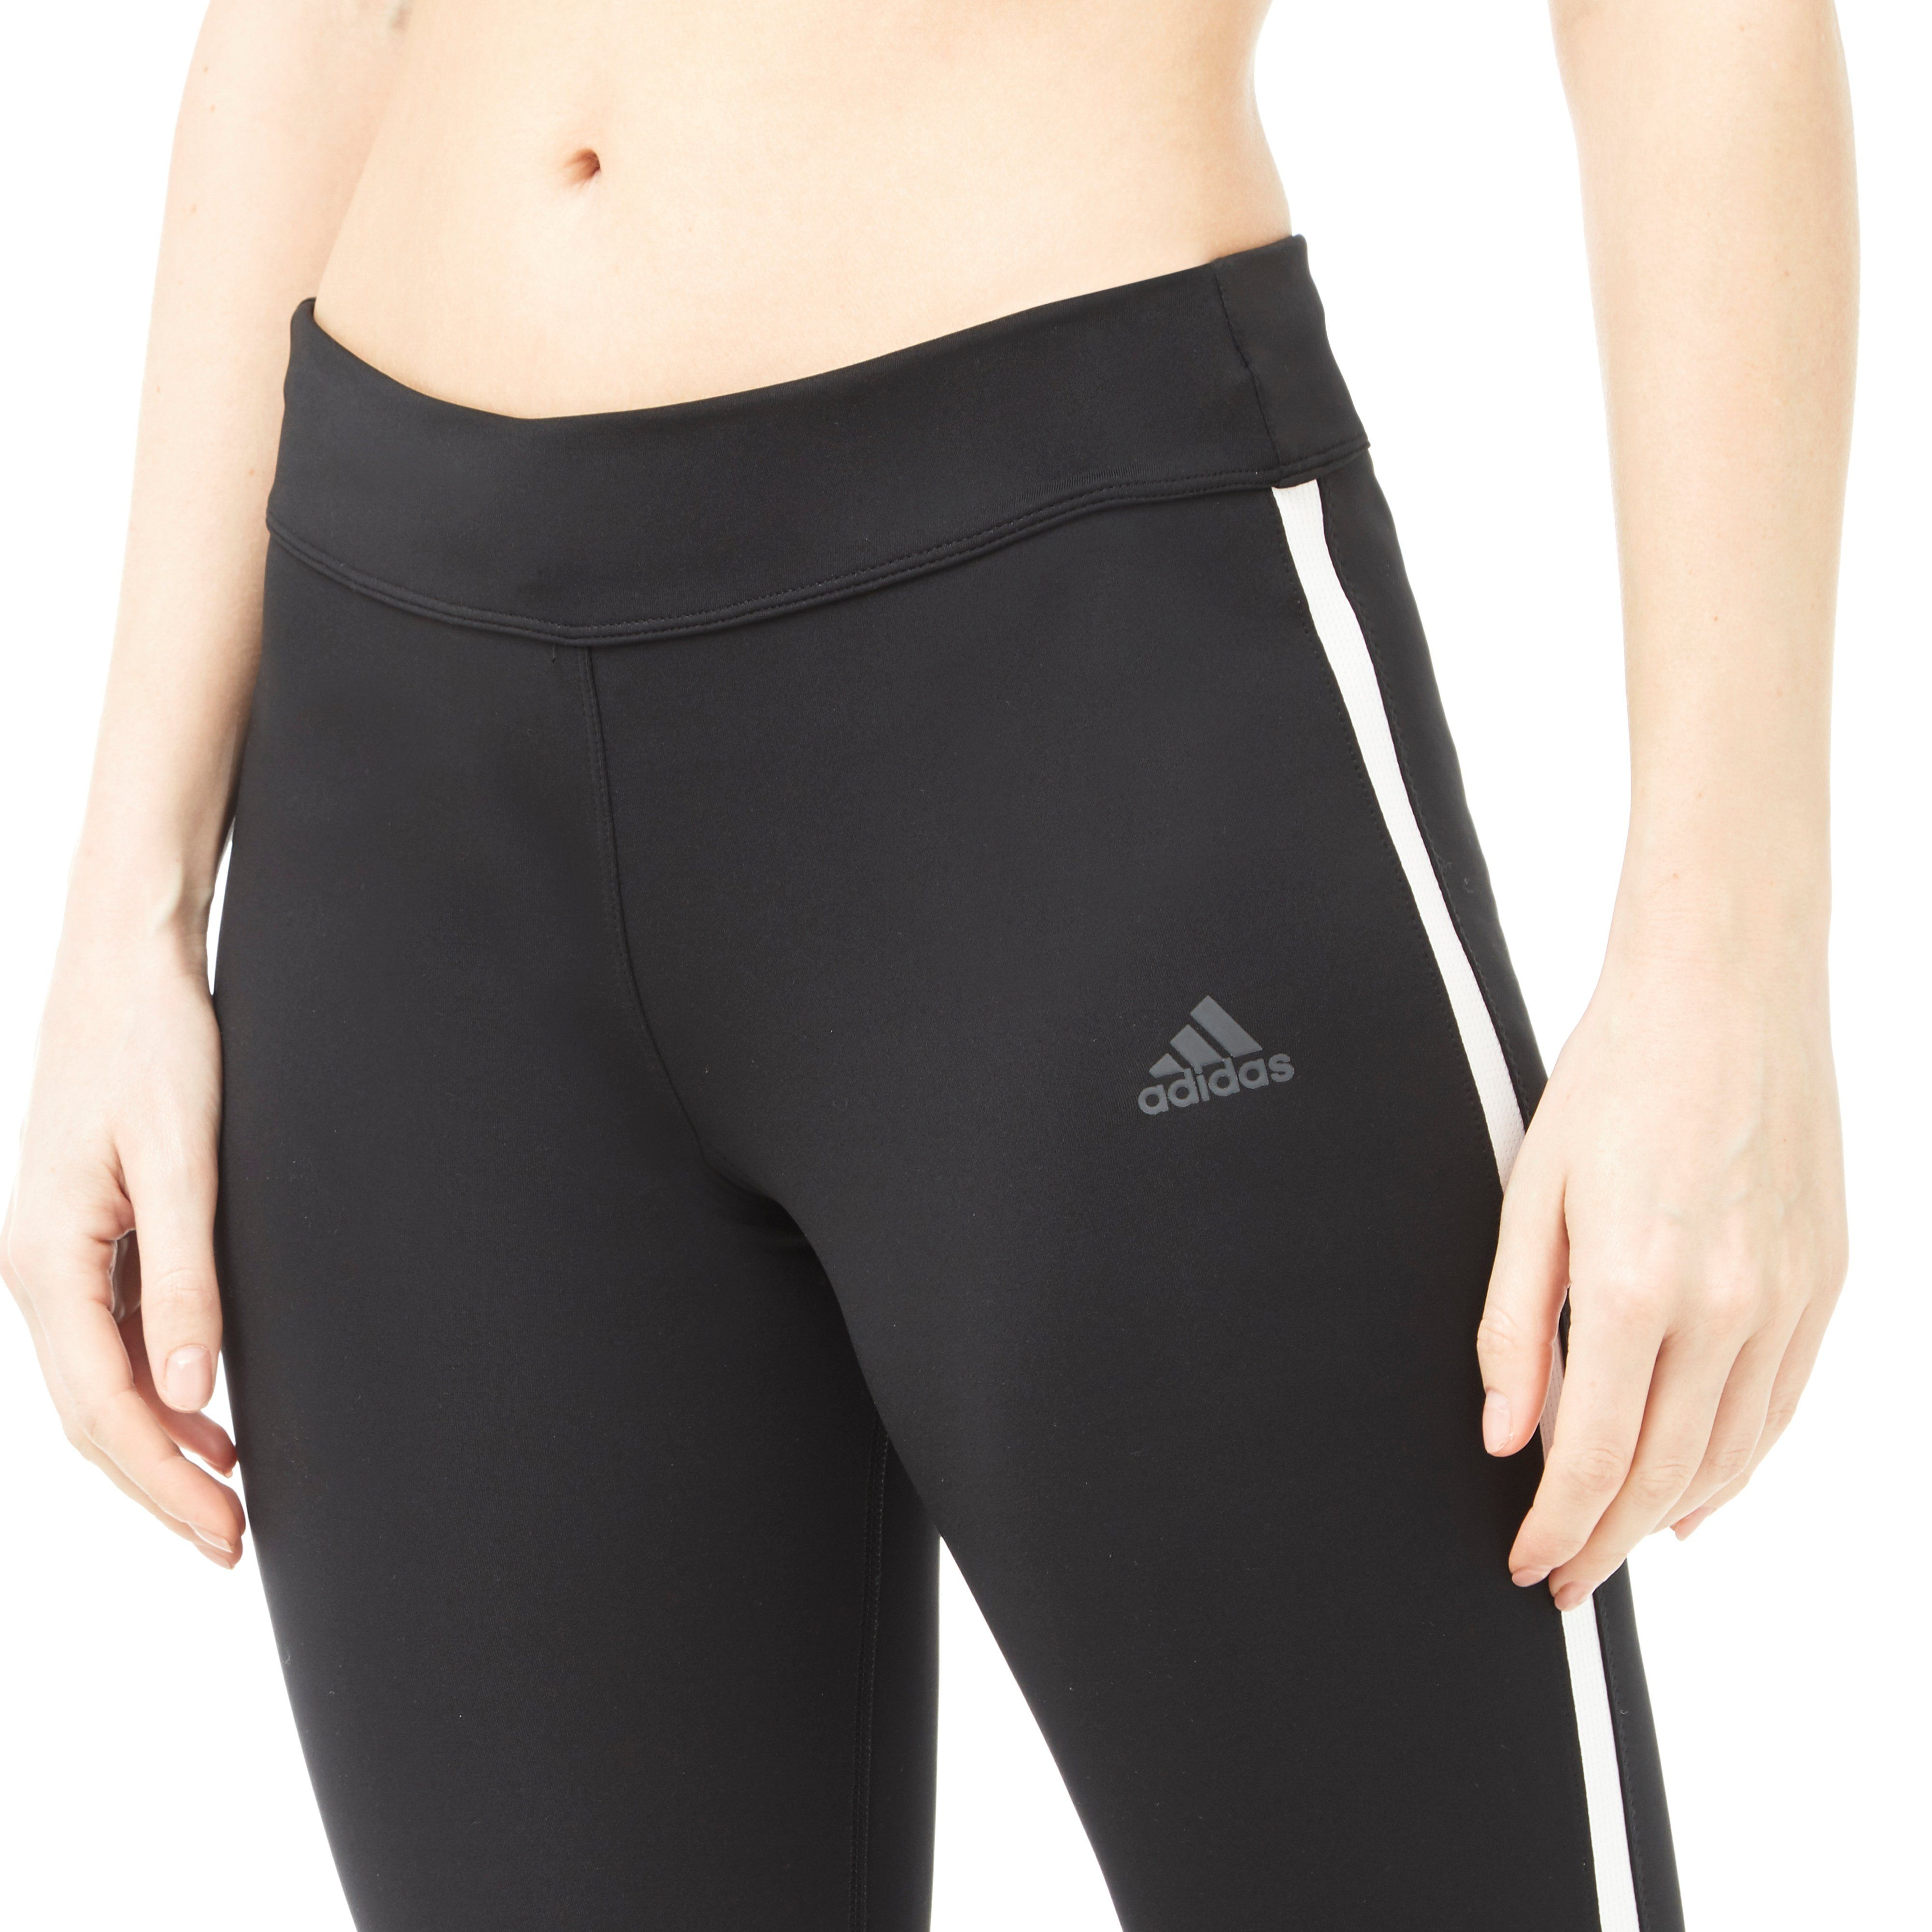 adidas Response ¾ Women's Running Tights